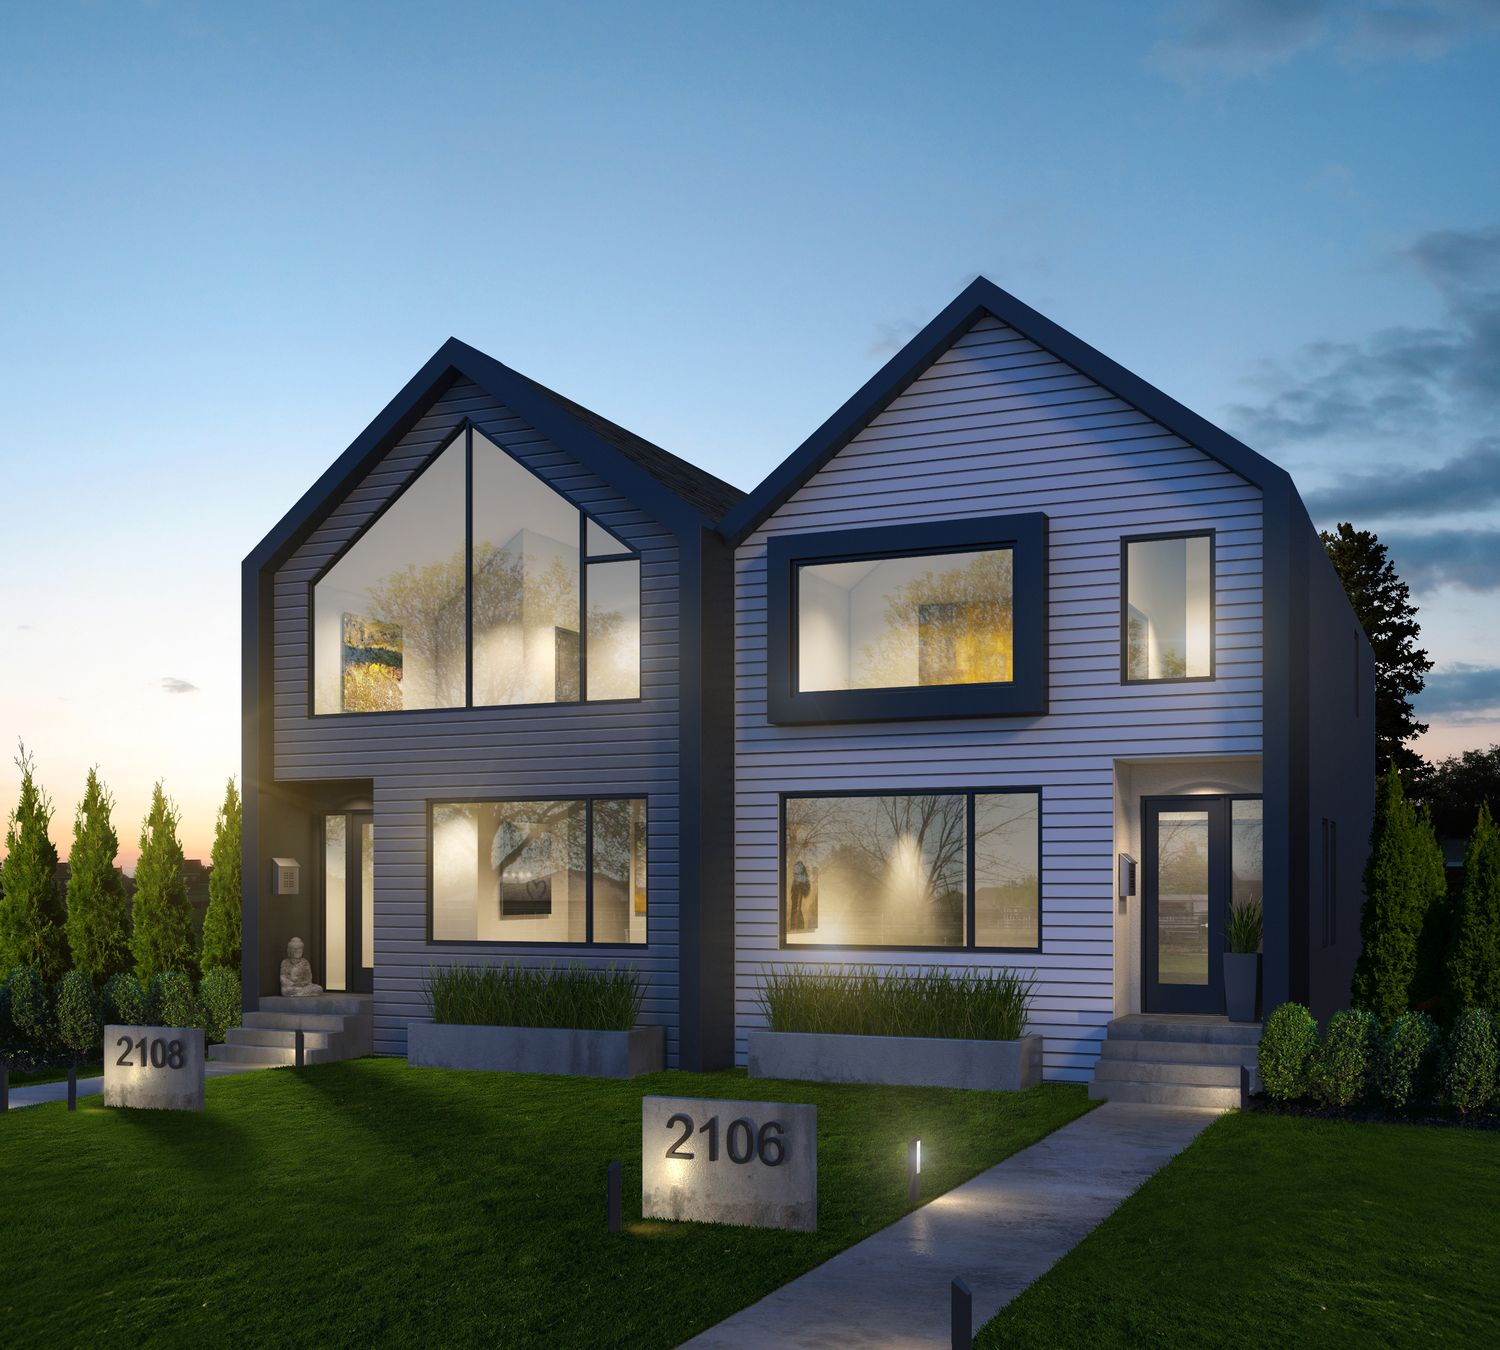 Contemporary Duplex House Design With A Plenty Of Overhang: Beyond Homes Http://www.beyondhomes.ca/ Together With